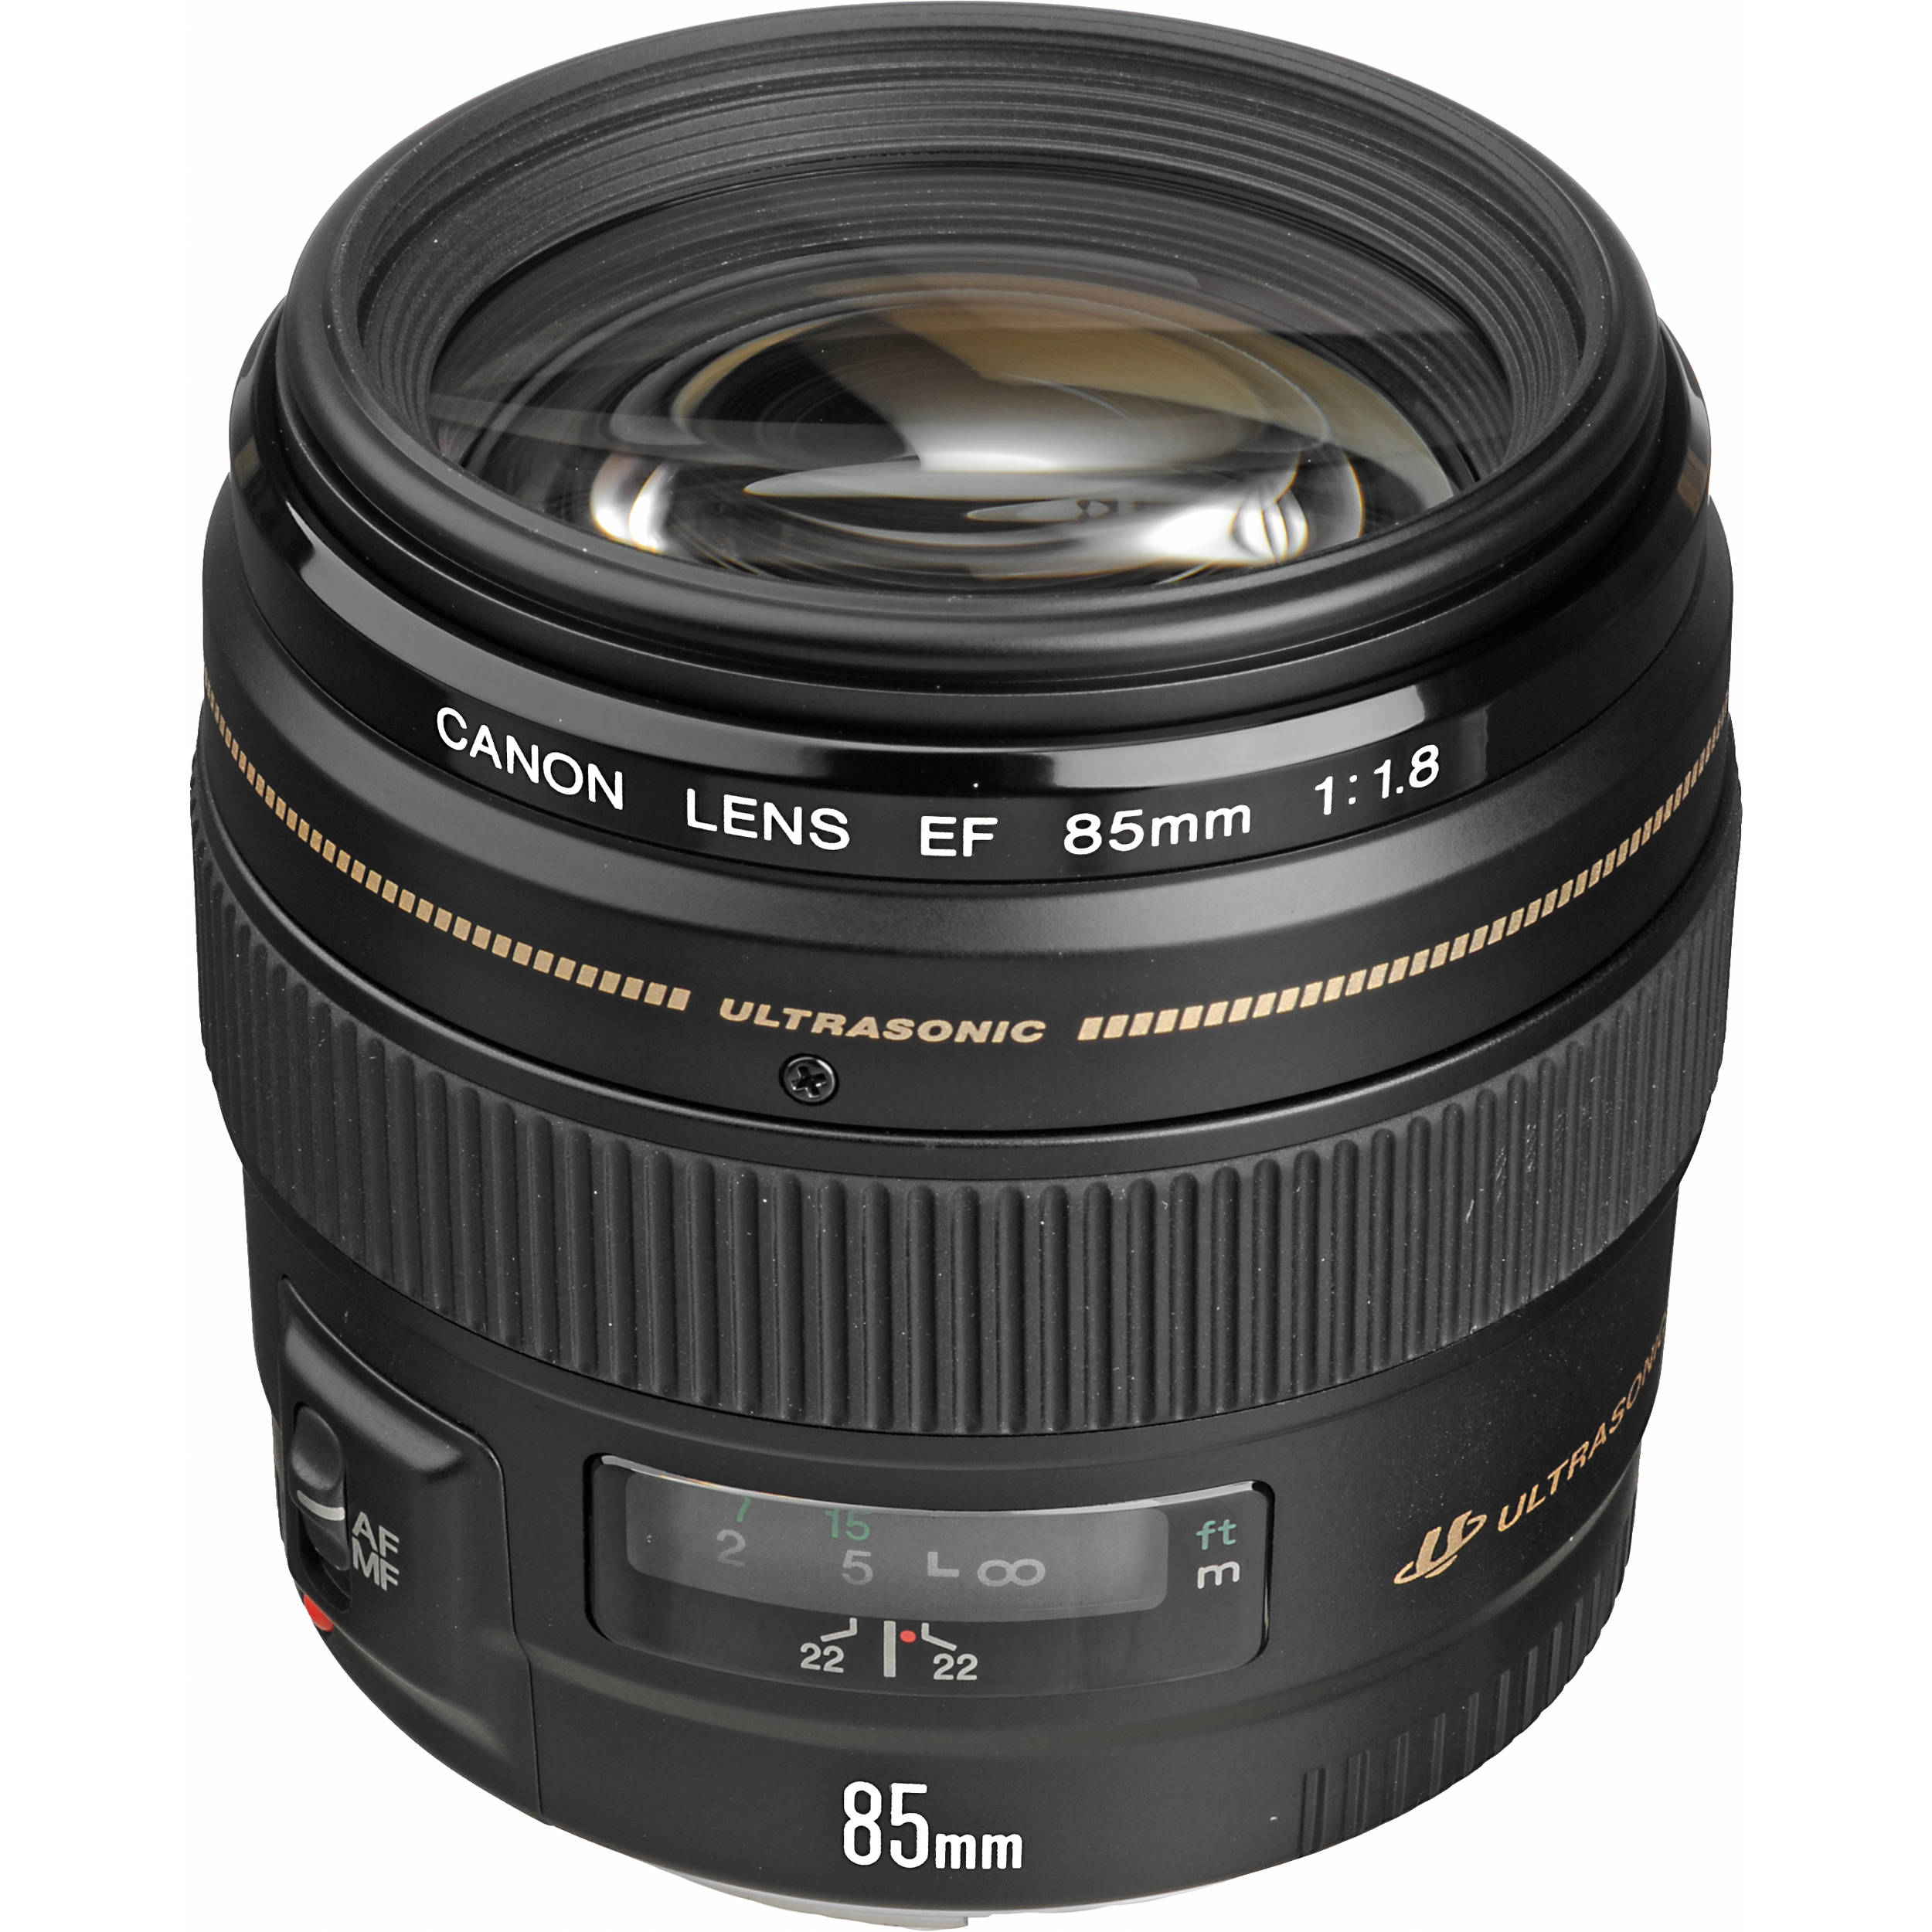 Canon EF 85mm f/1.8 USM 85mm Lens 2519A003 B&H Photo